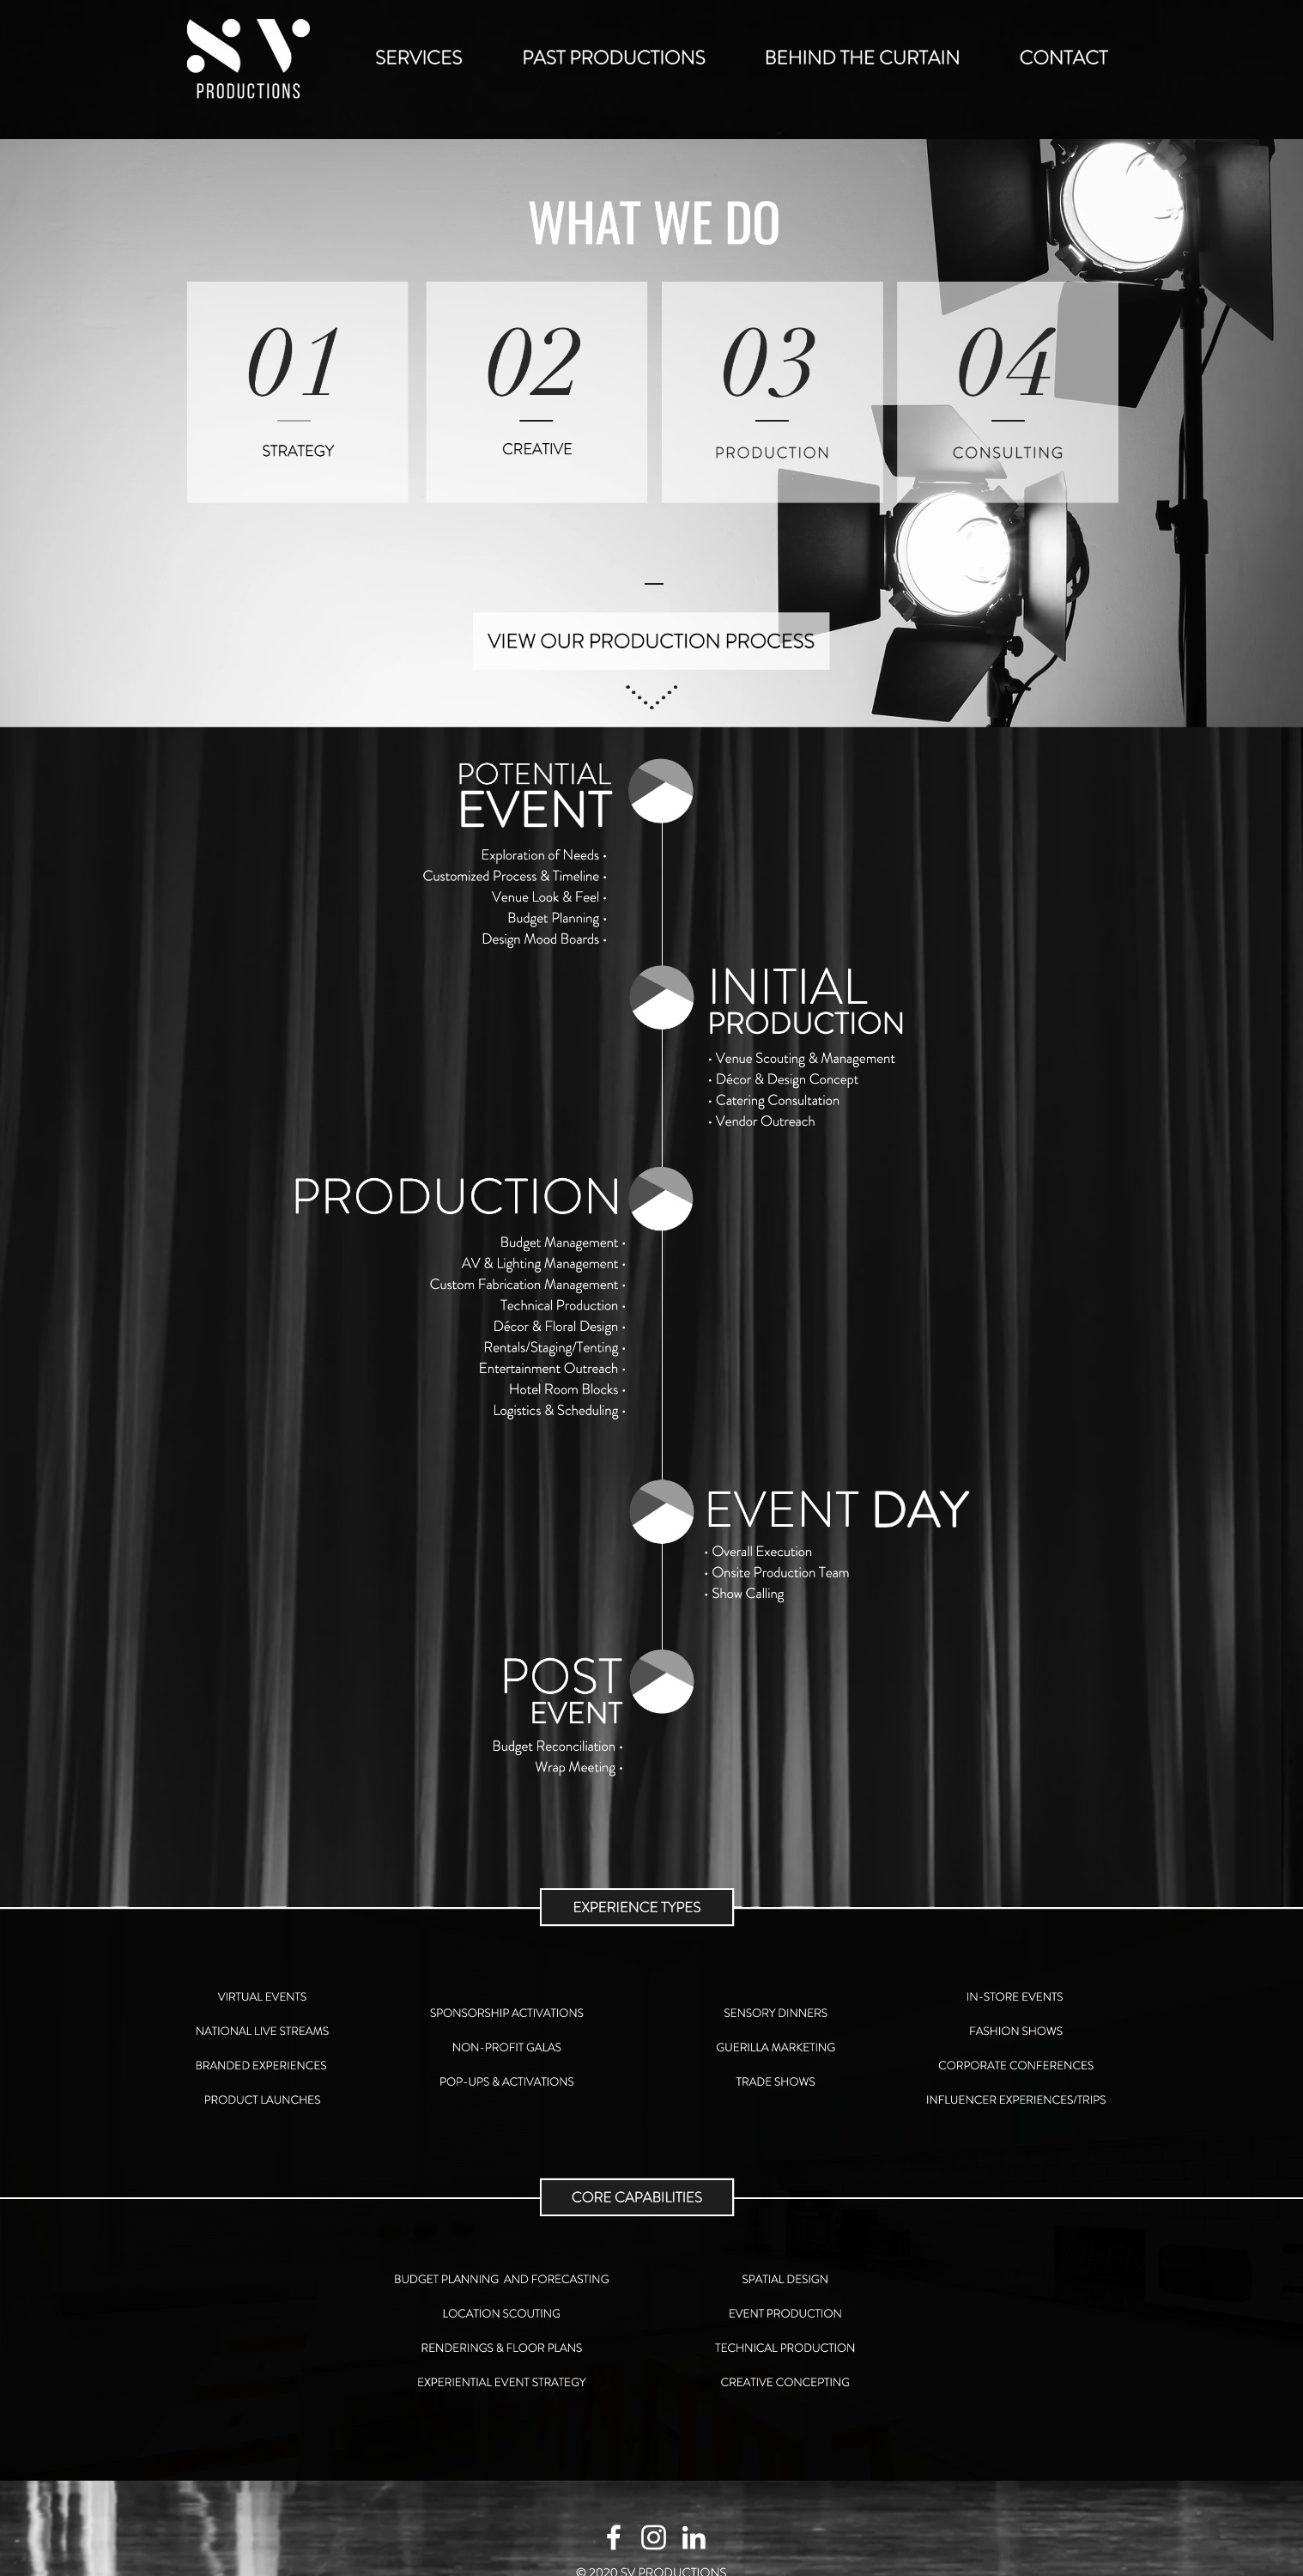 Services_Experiential_Events_Agency_SV_P